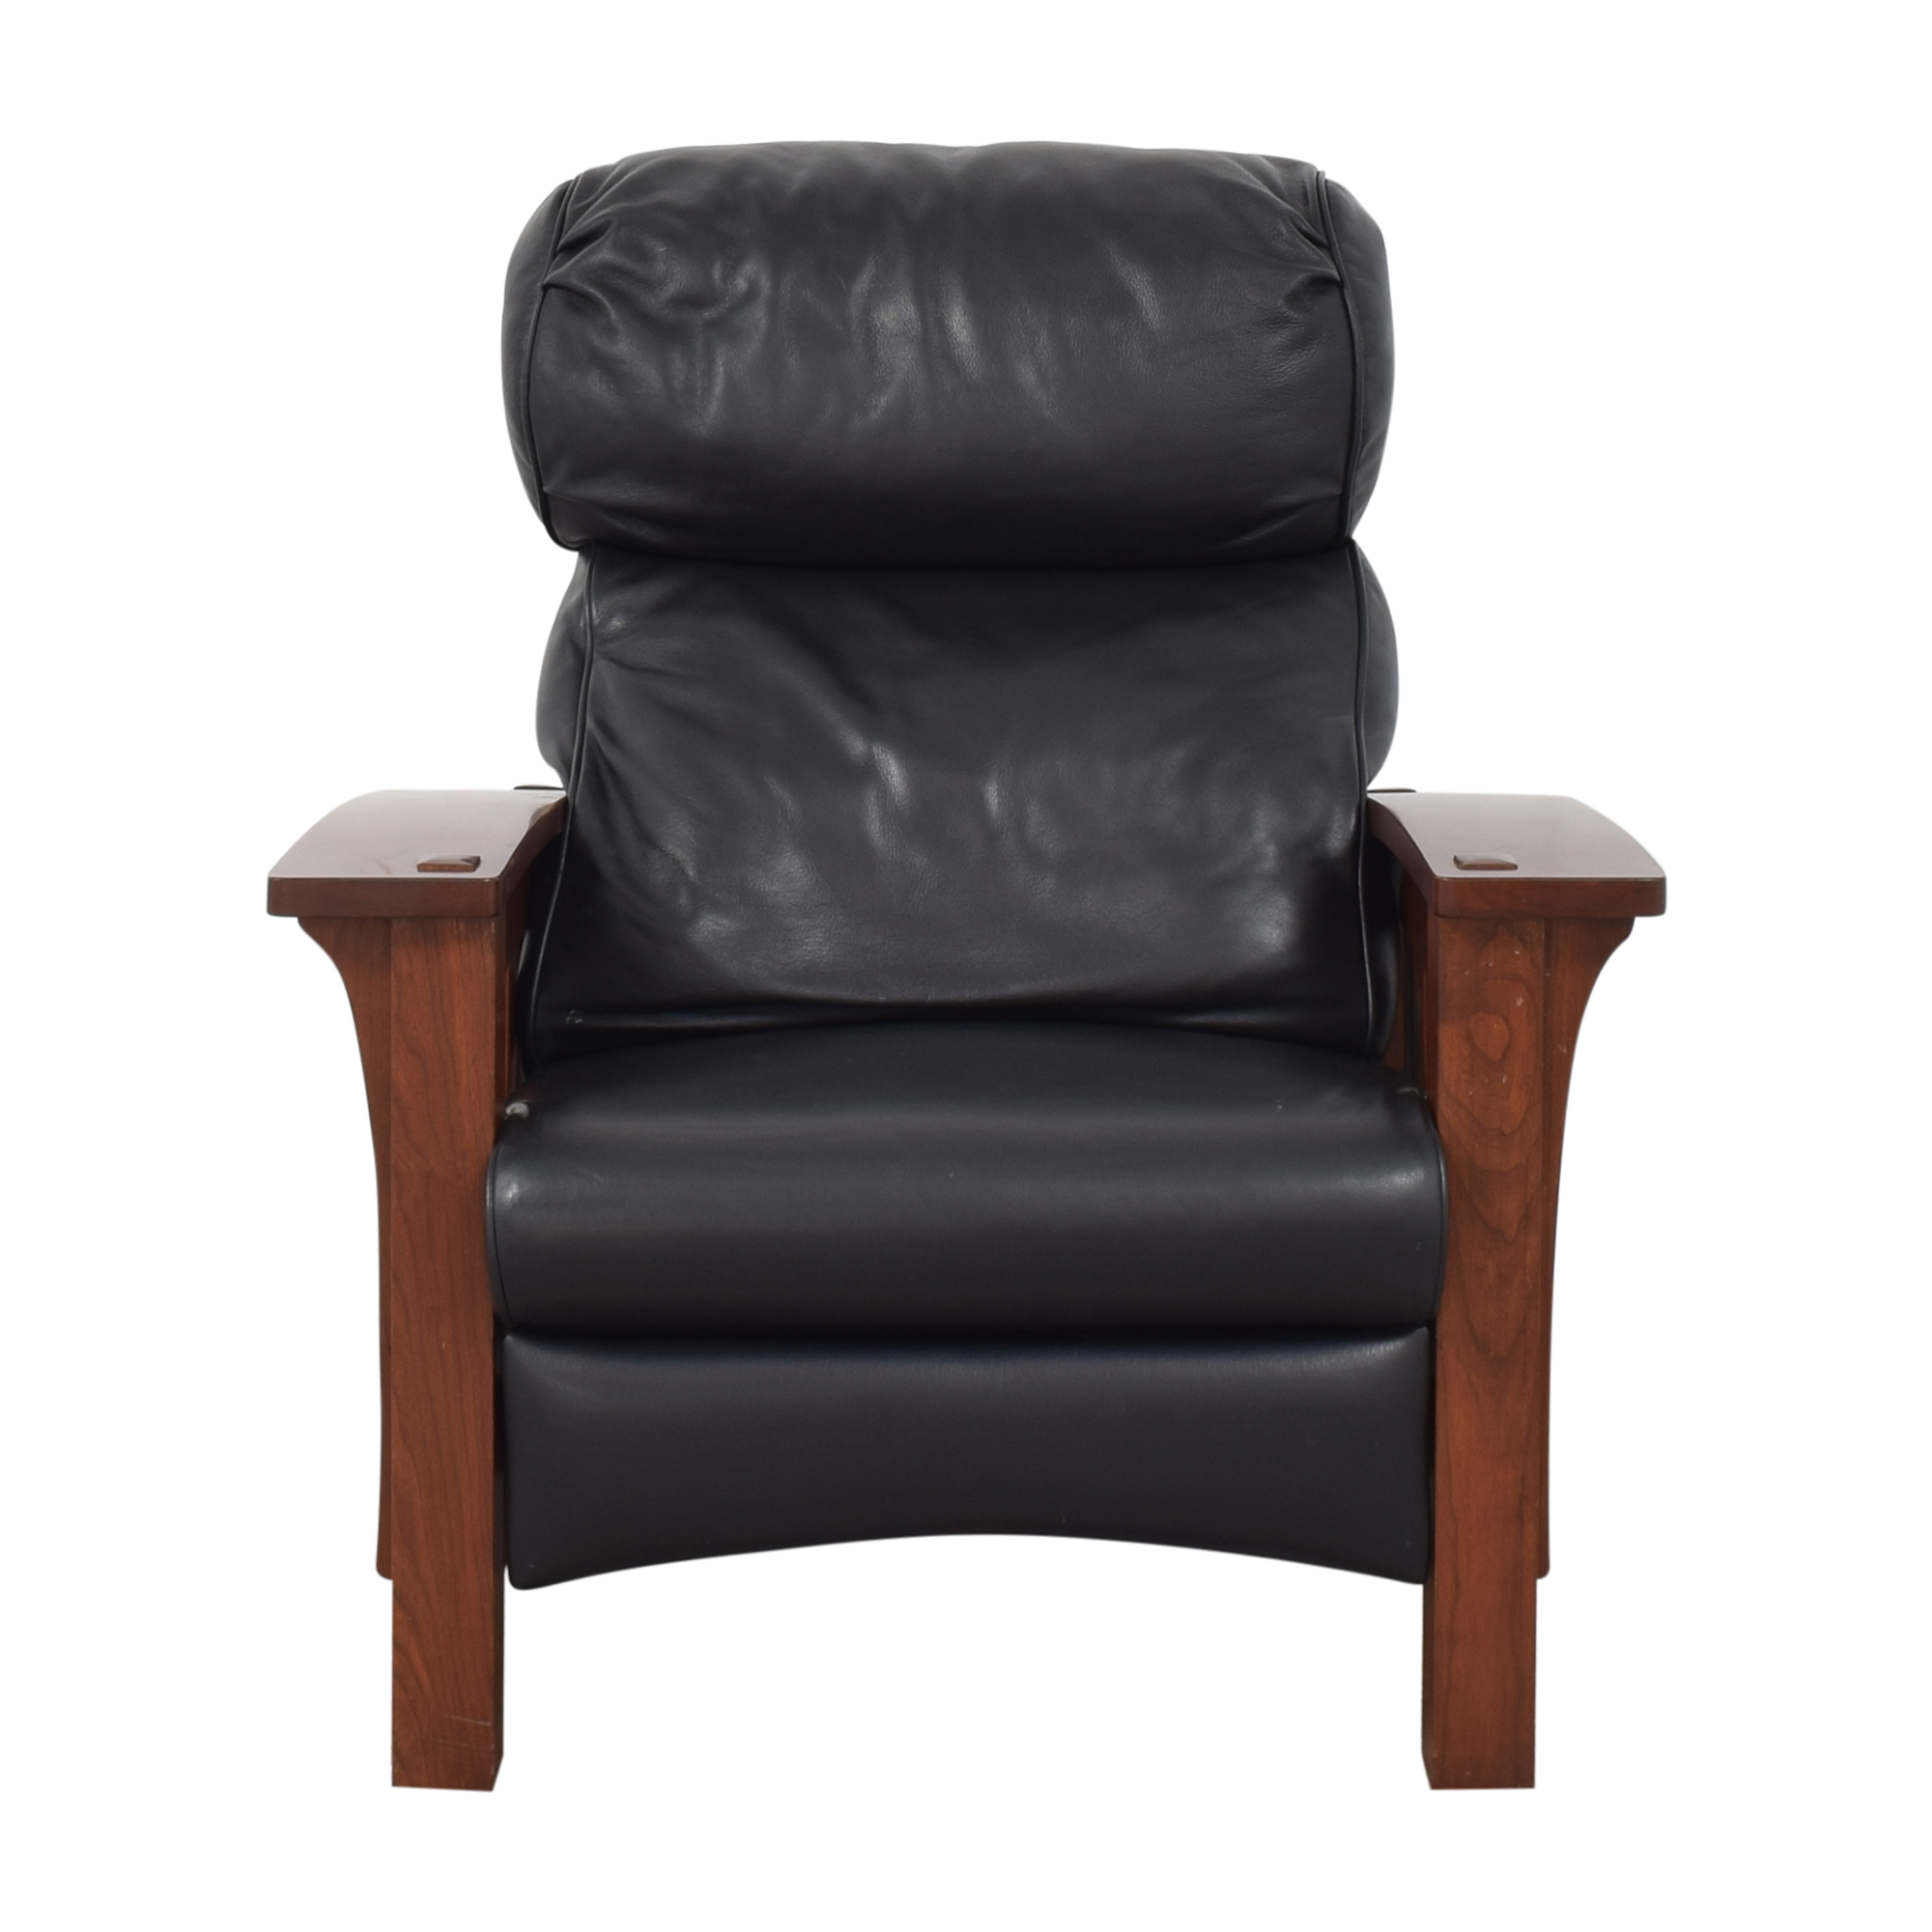 Stickley Furniture Stickley Bow Arm Morris Recliner coupon